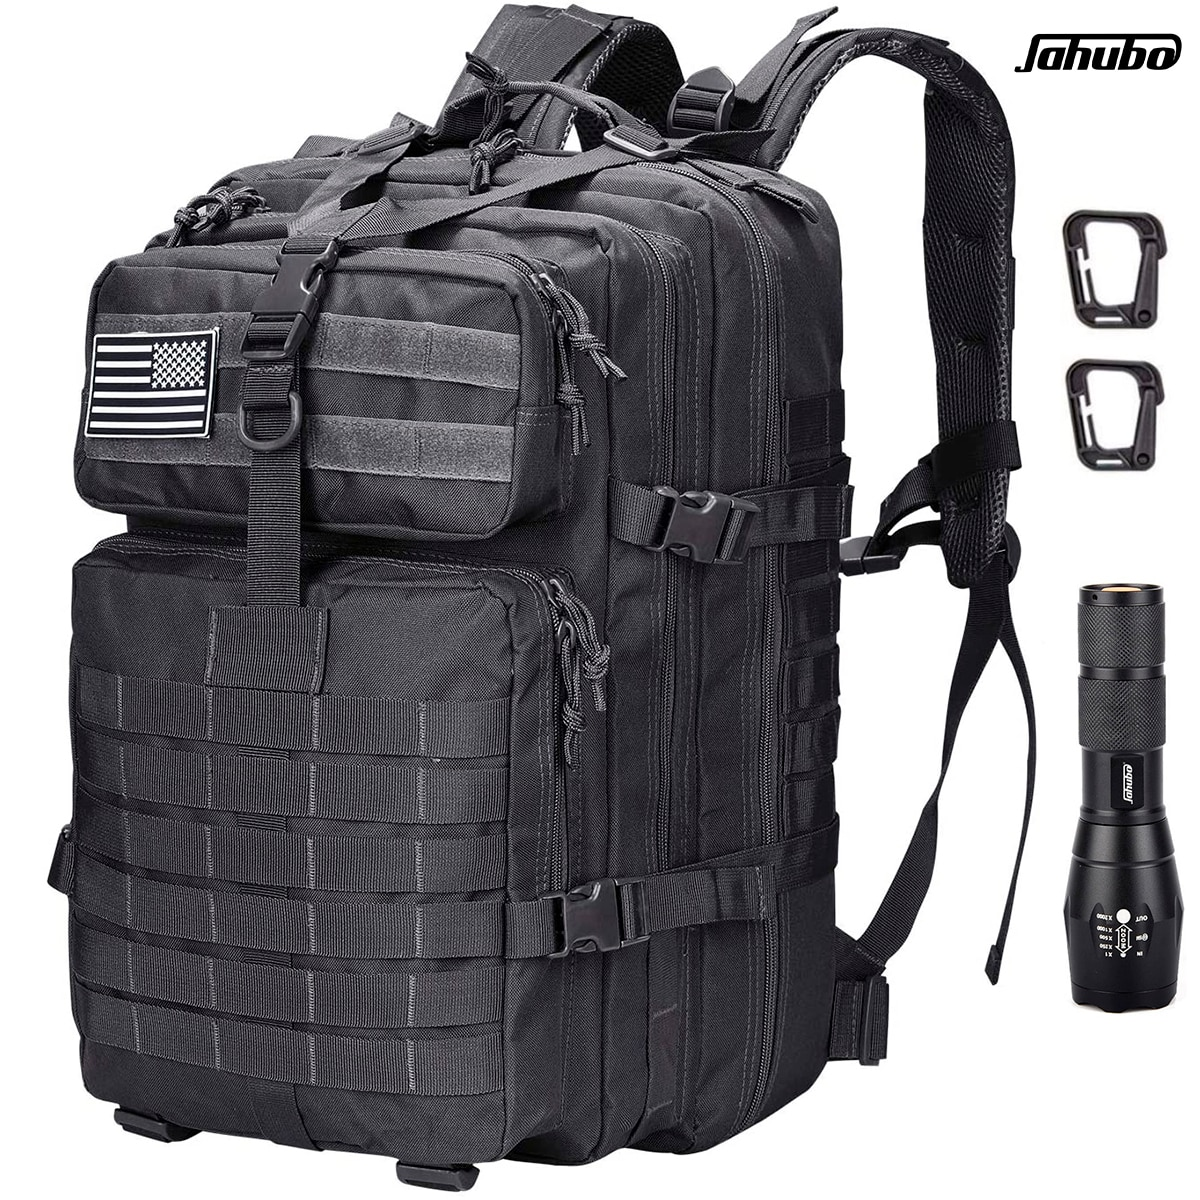 Waterproof tactical backpack 45L-50L large capacity Nylon 900D multiple pockets Hiking Camping, mountaineering, hunting, air